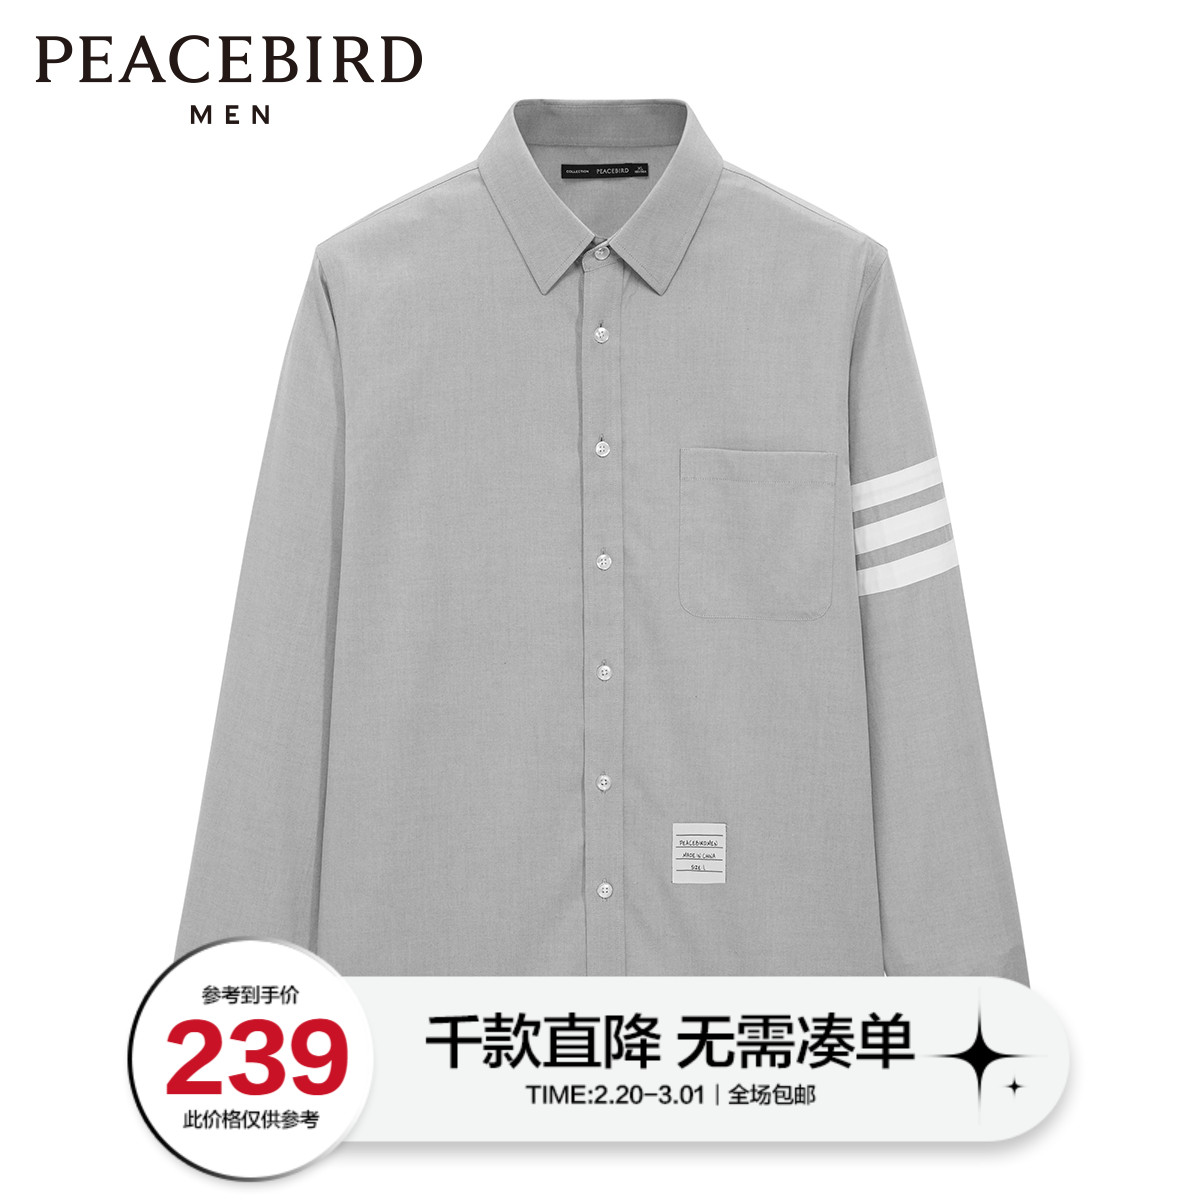 Peacebird Men's Spring New Men's Non-iron Long Sleeve Shirt Simple Fashion Youth Gray Shirt Korean Trend